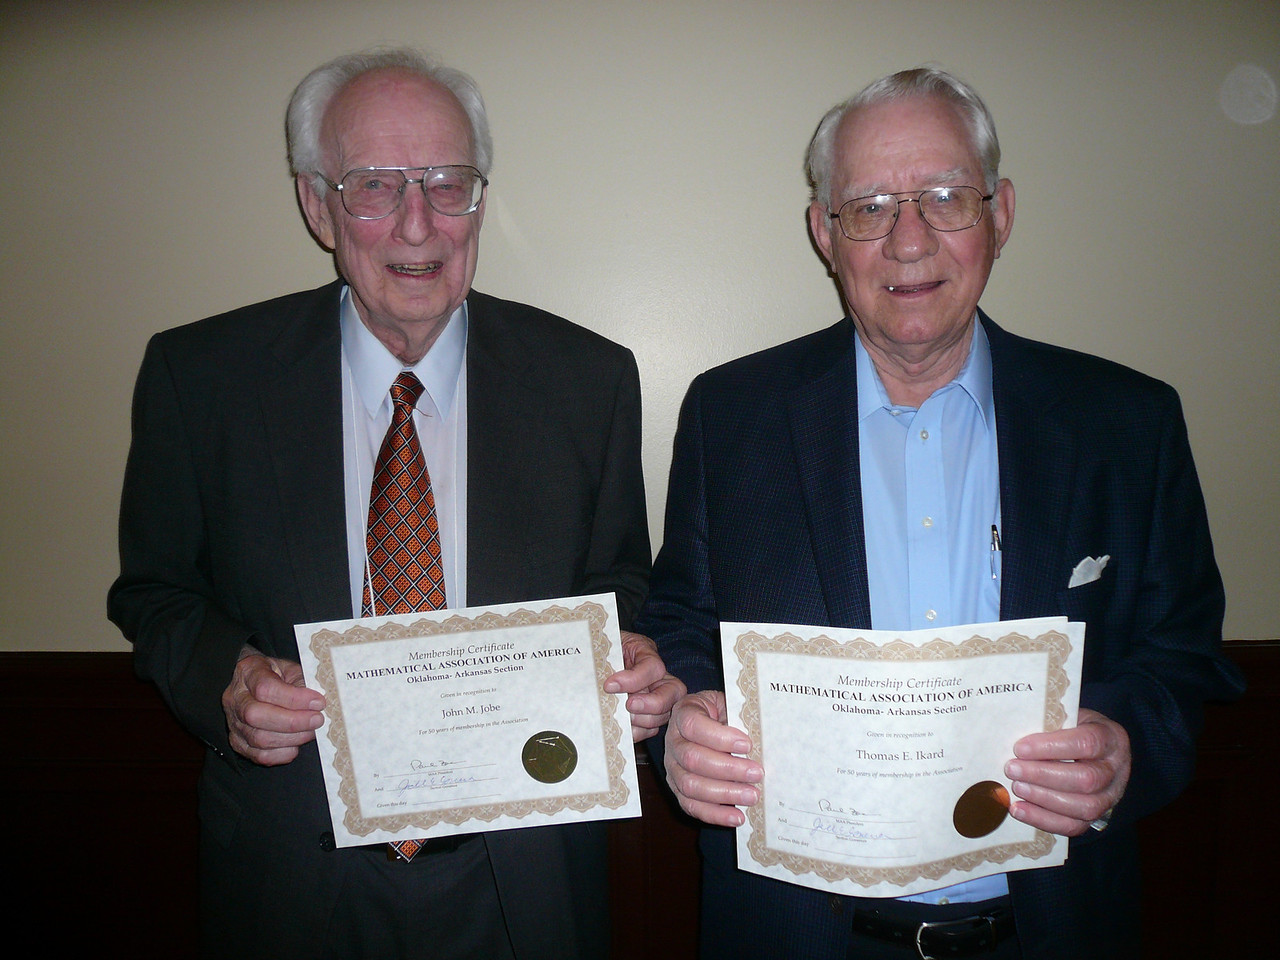 Two longtime members of the MAA from the OK-AR Section